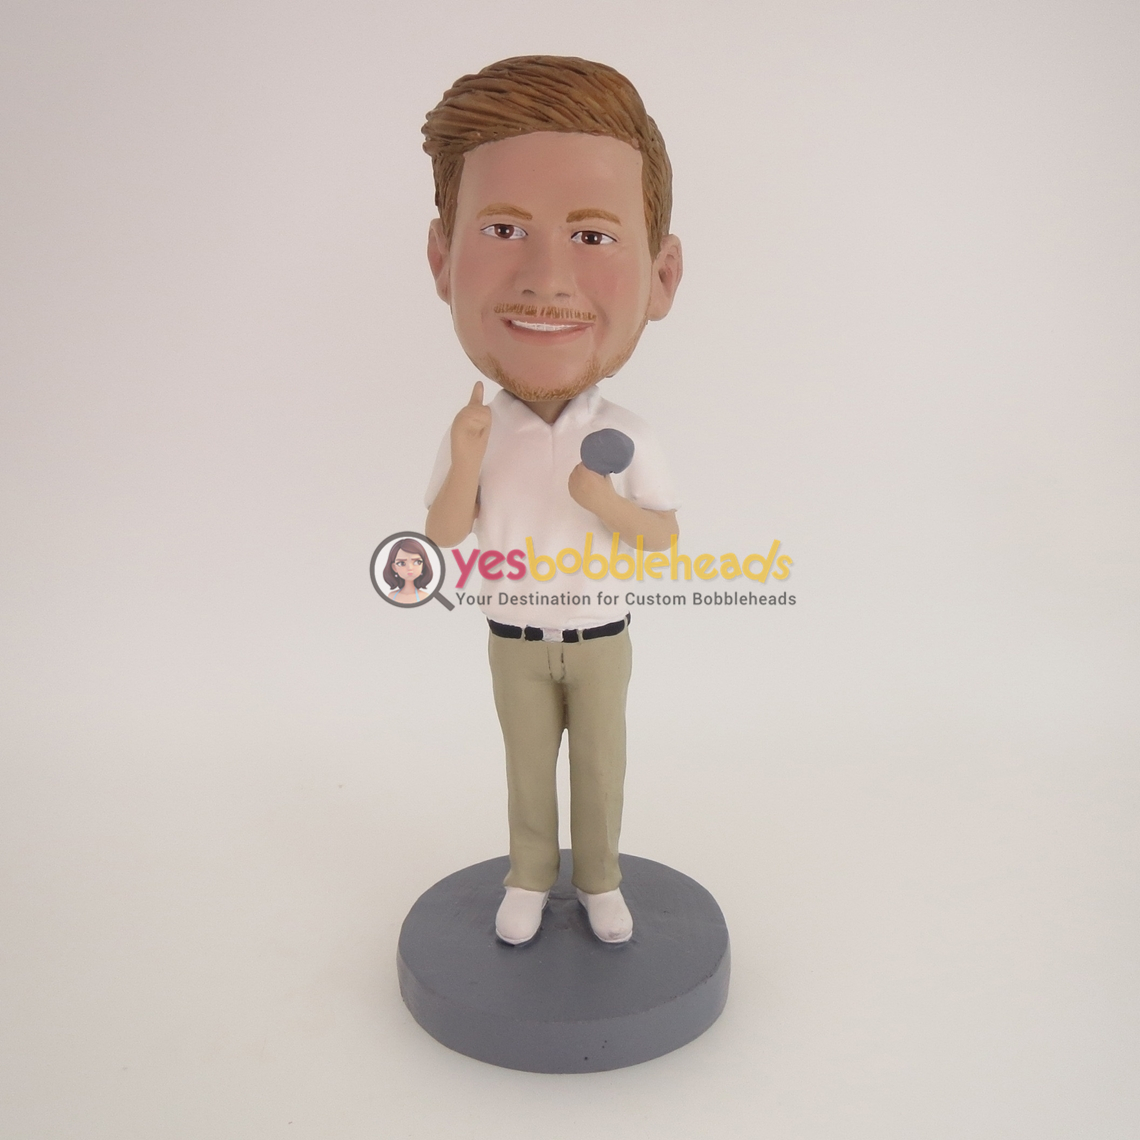 Picture of Custom Bobblehead Doll: White Shirt Man With Microphone